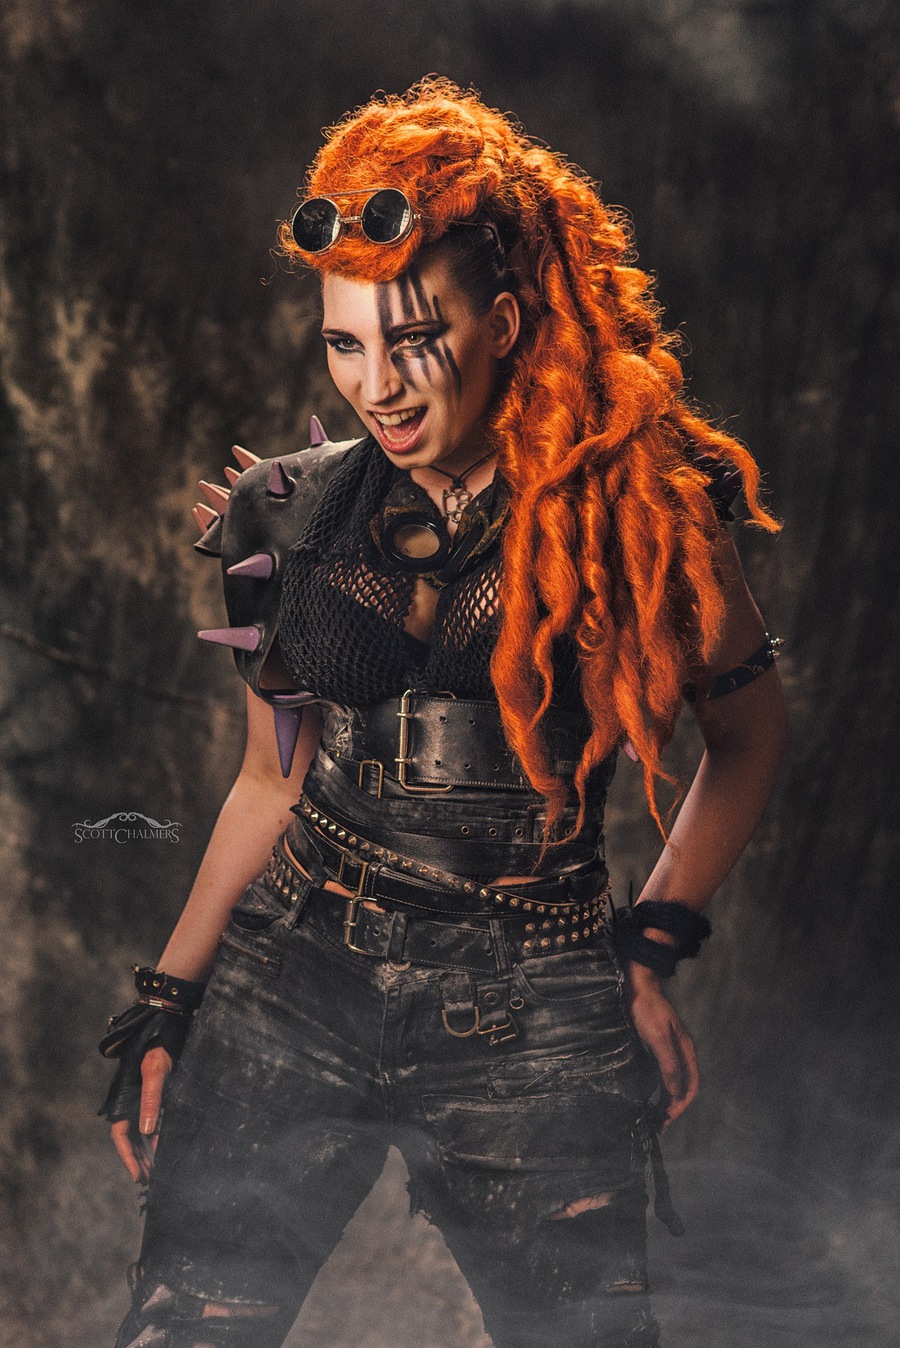 Mad Max-styled shoot / Photography by Scott Chalmers, Taken at Shutterworks Studio / Uploaded 31st March 2016 @ 10:51 PM